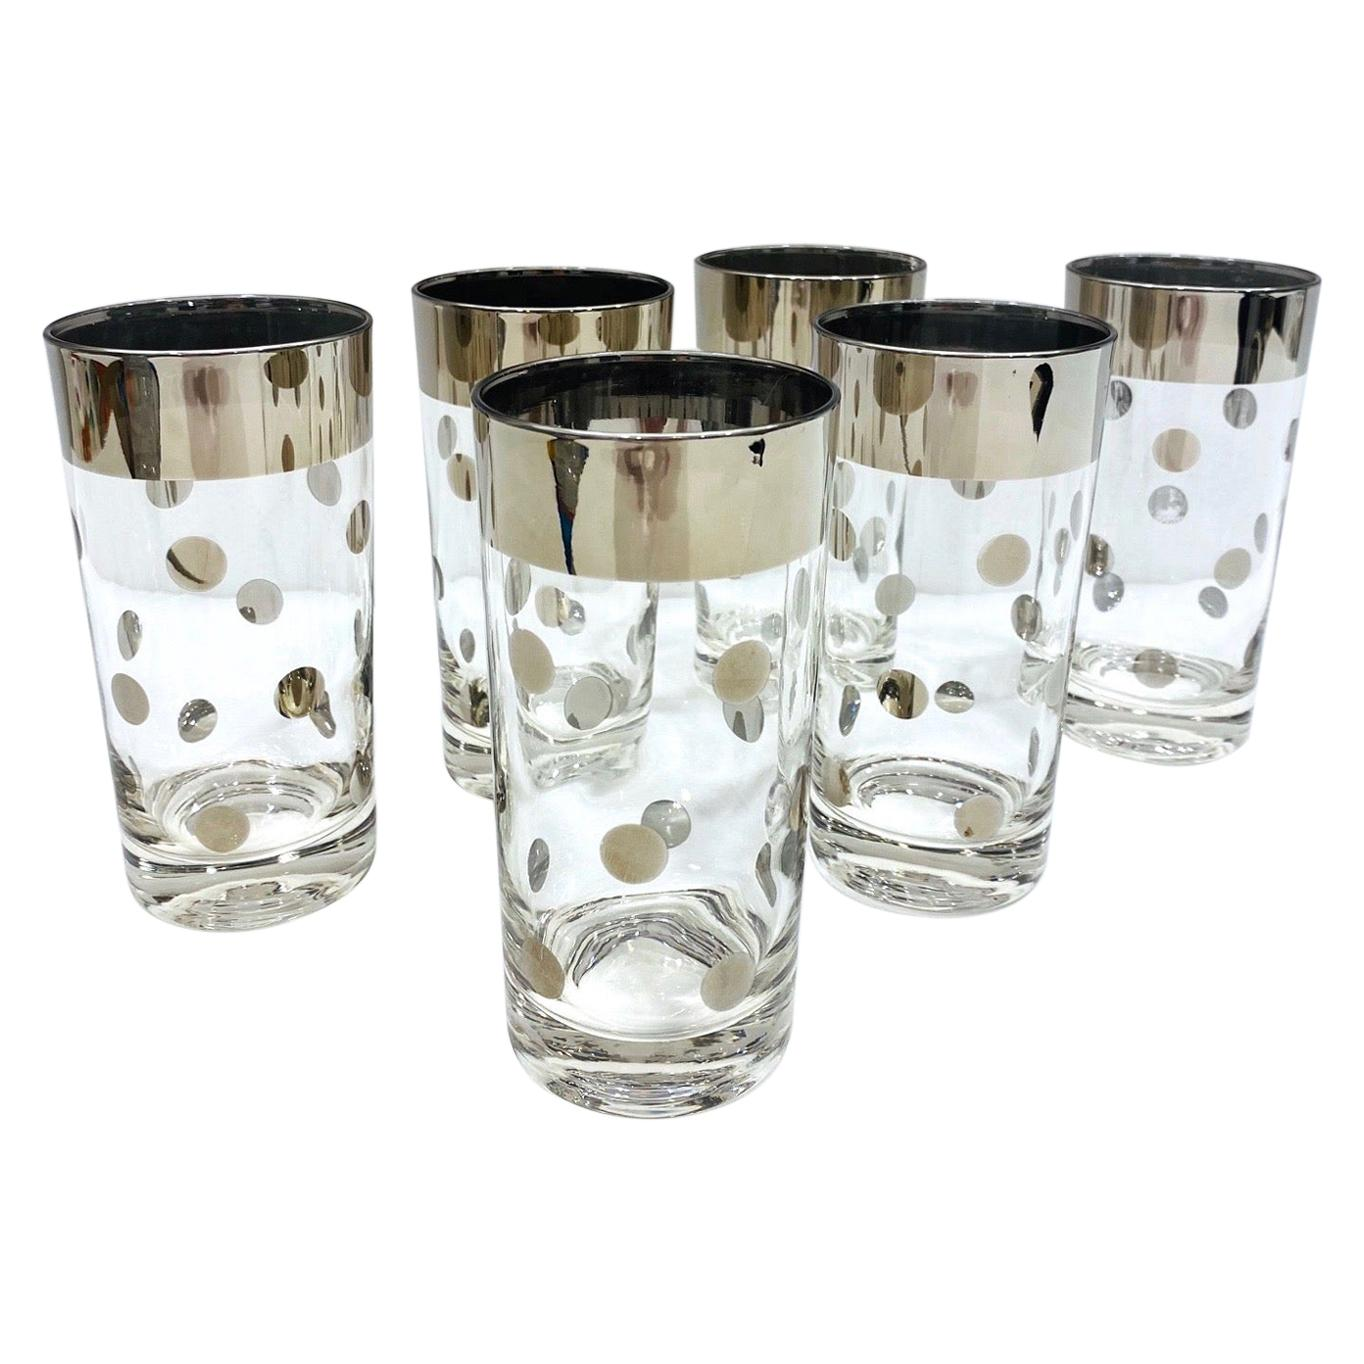 Set of Six Polka Dot Barware Glasses with Silver Overlay by Dorothy Thorpe, 1960